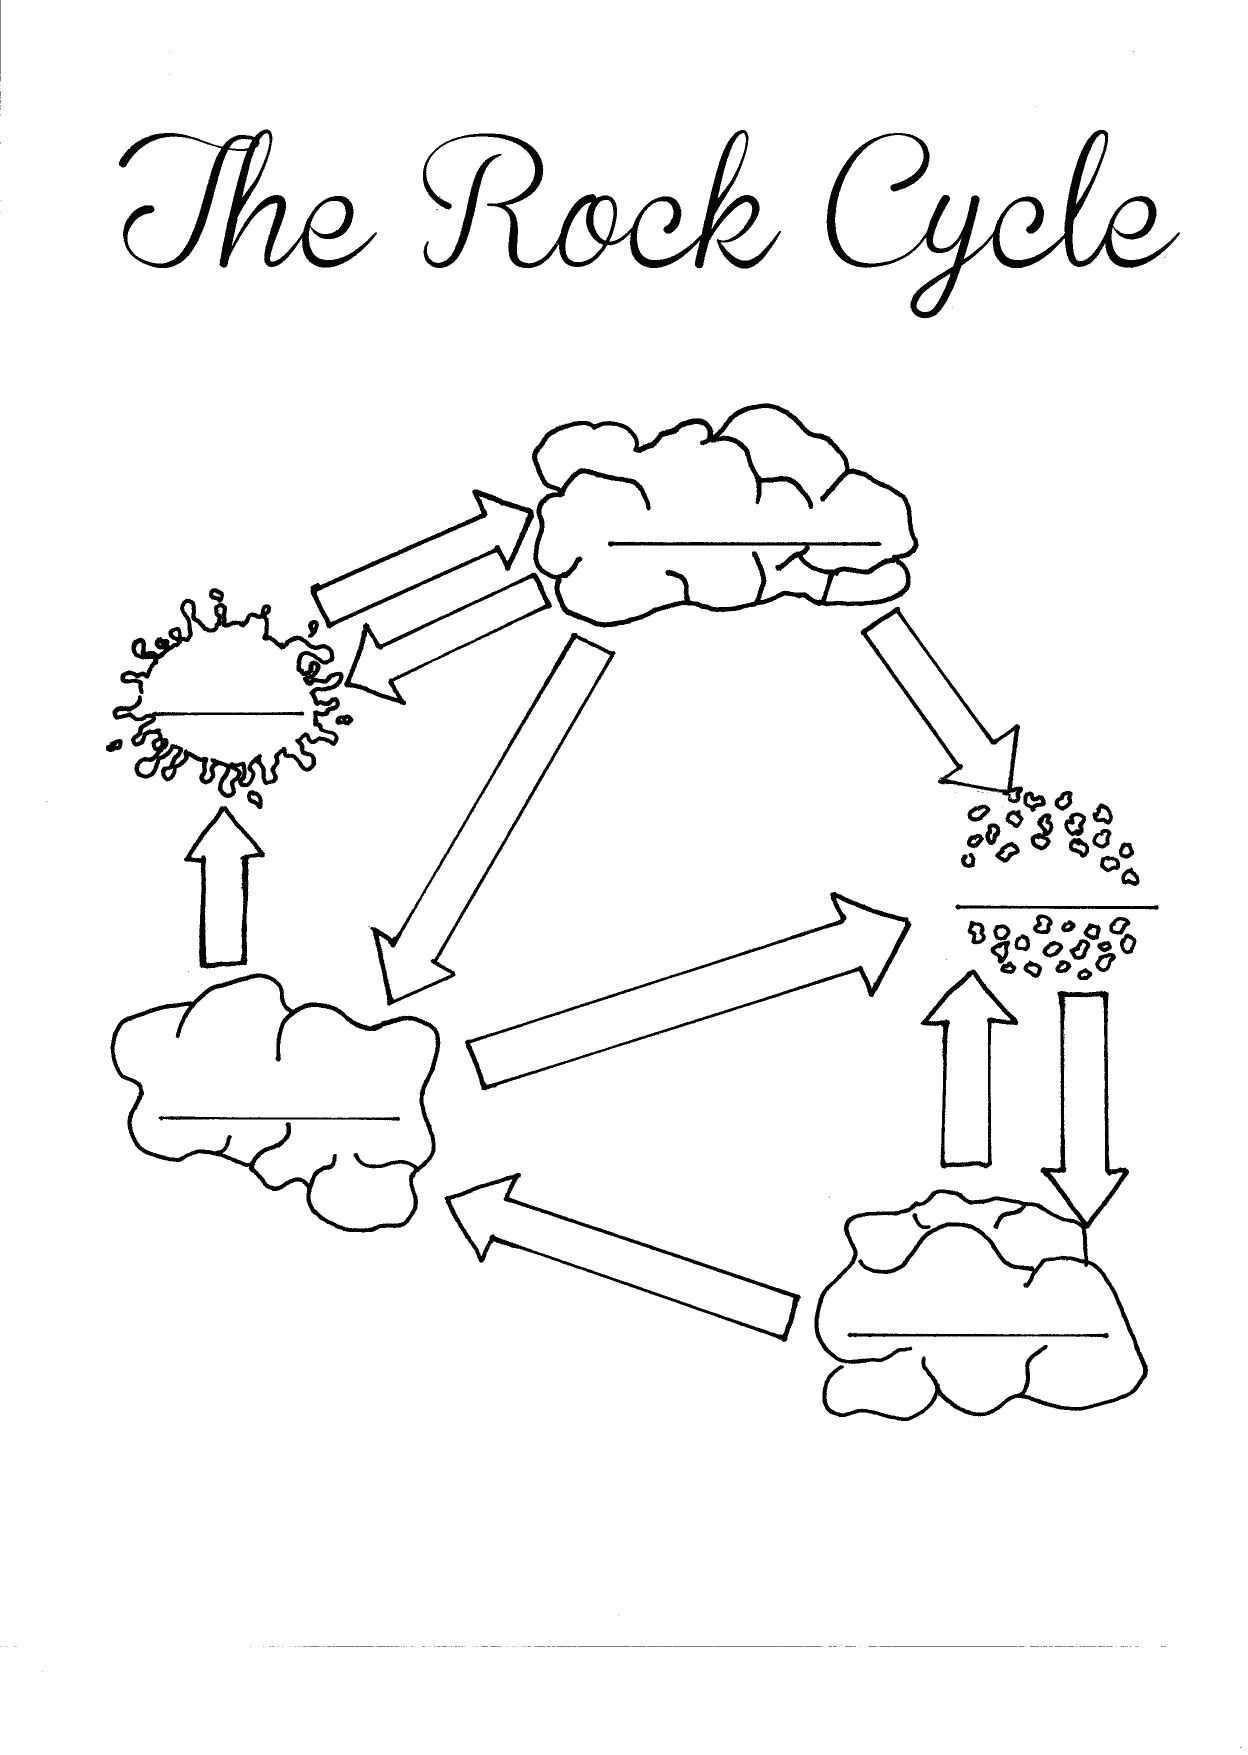 Worksheets Rock Cycle Worksheet the rock cycle blank worksheet fill in as you talk about or go through the